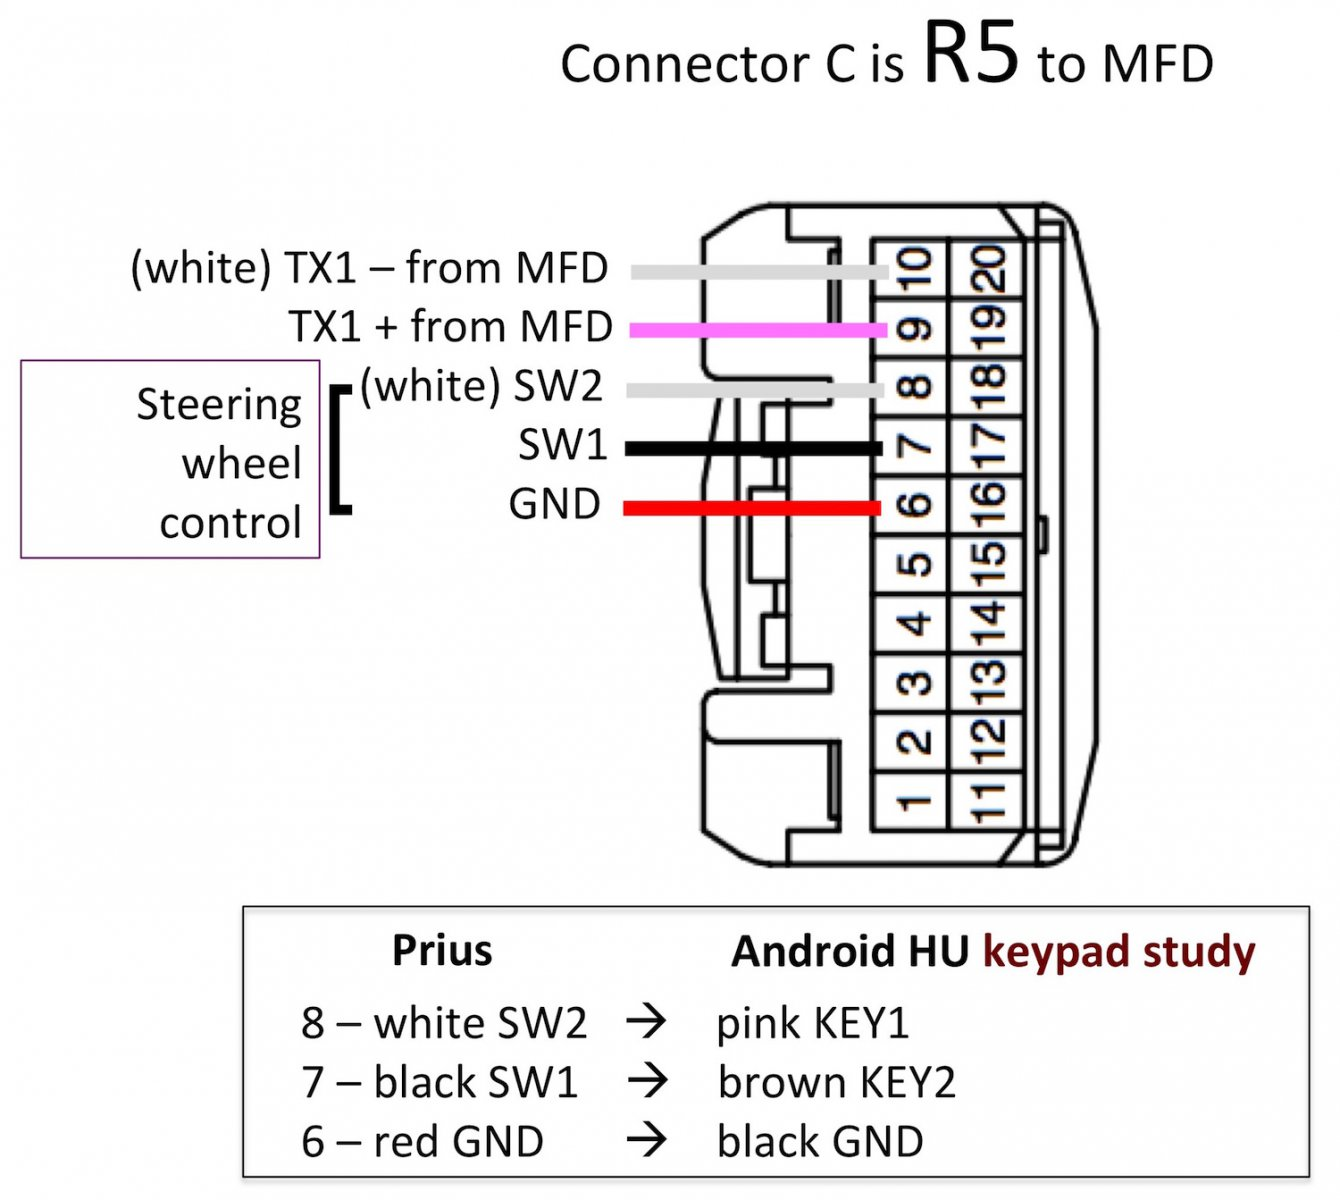 Steering Wheel Control With Android Hu Without Metra Aswc Interface on toyota camry wiring diagram